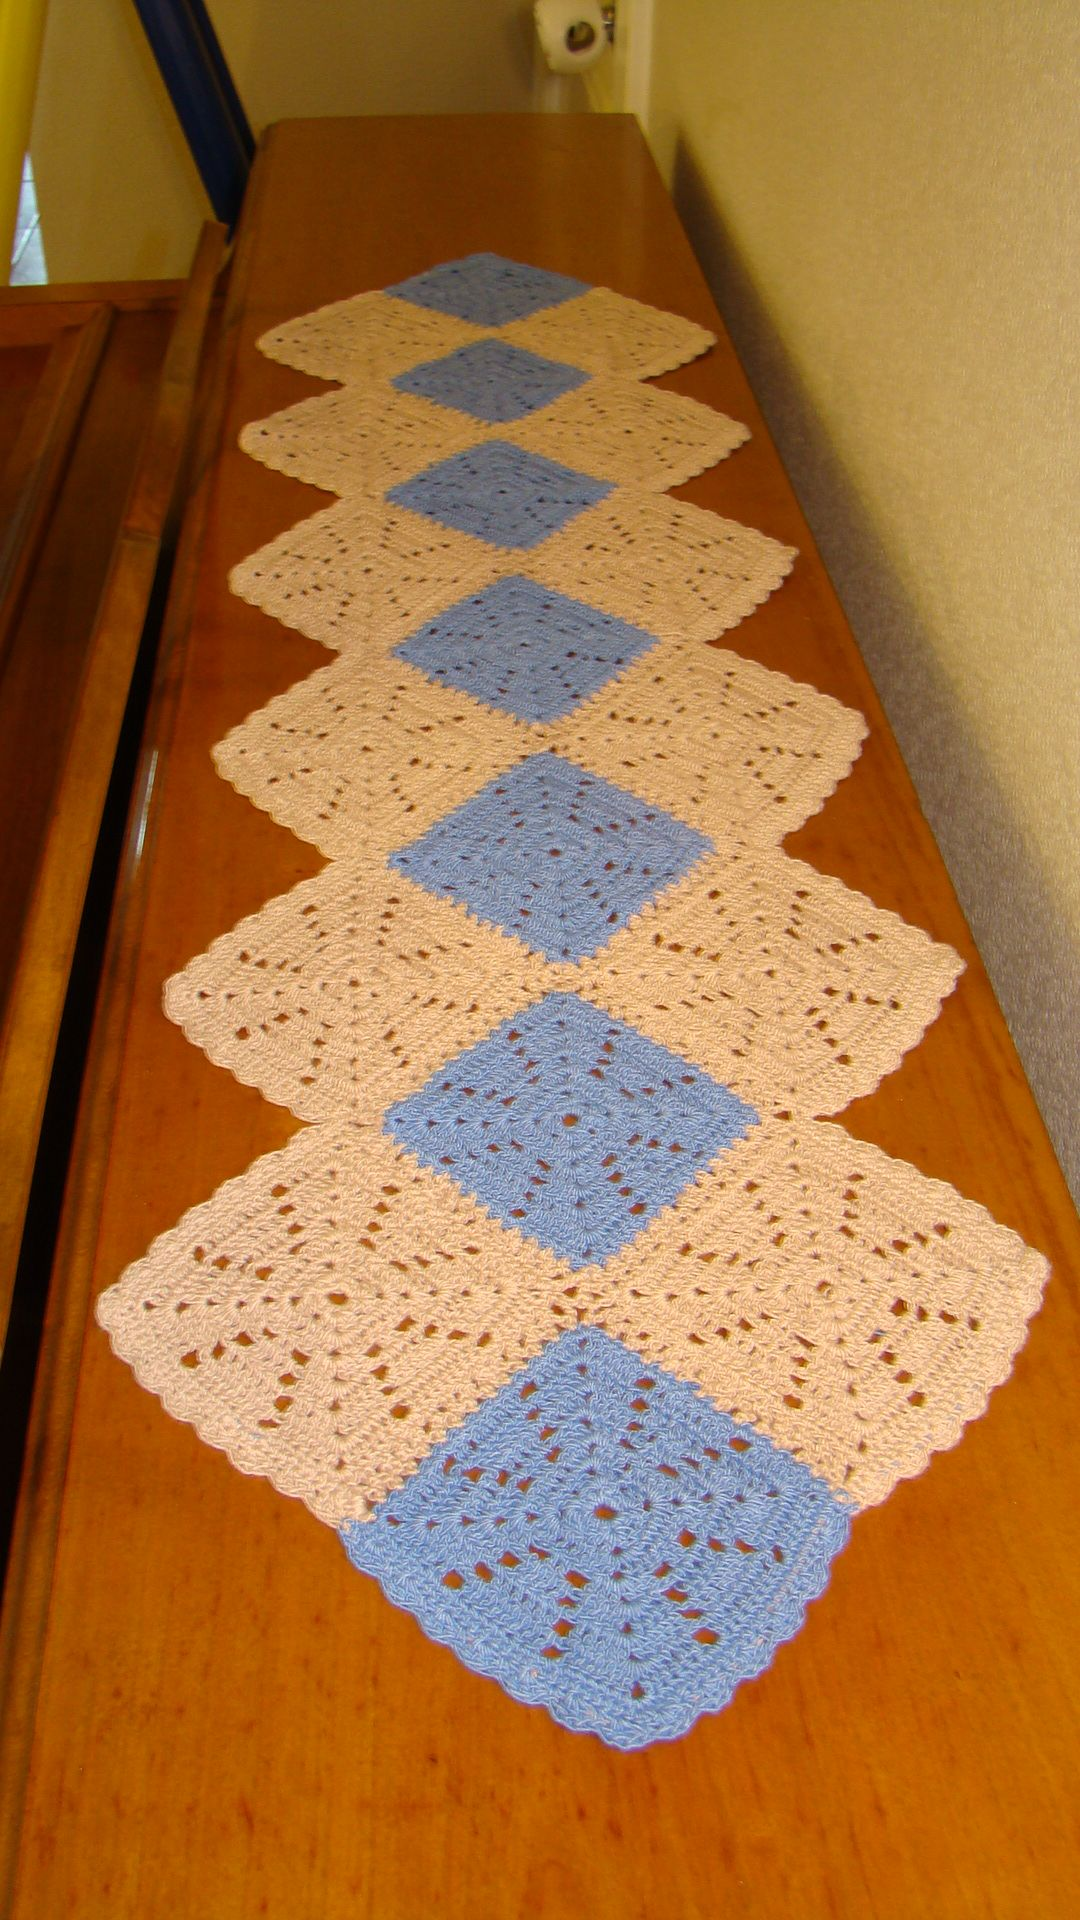 Fun And Easy Table Runner This Measures About 33 Inches Long Trippy Hippy Crochet Afghan Pattern Kingdom 4 Wide Is Easily Adjustable To Fit Your Needs